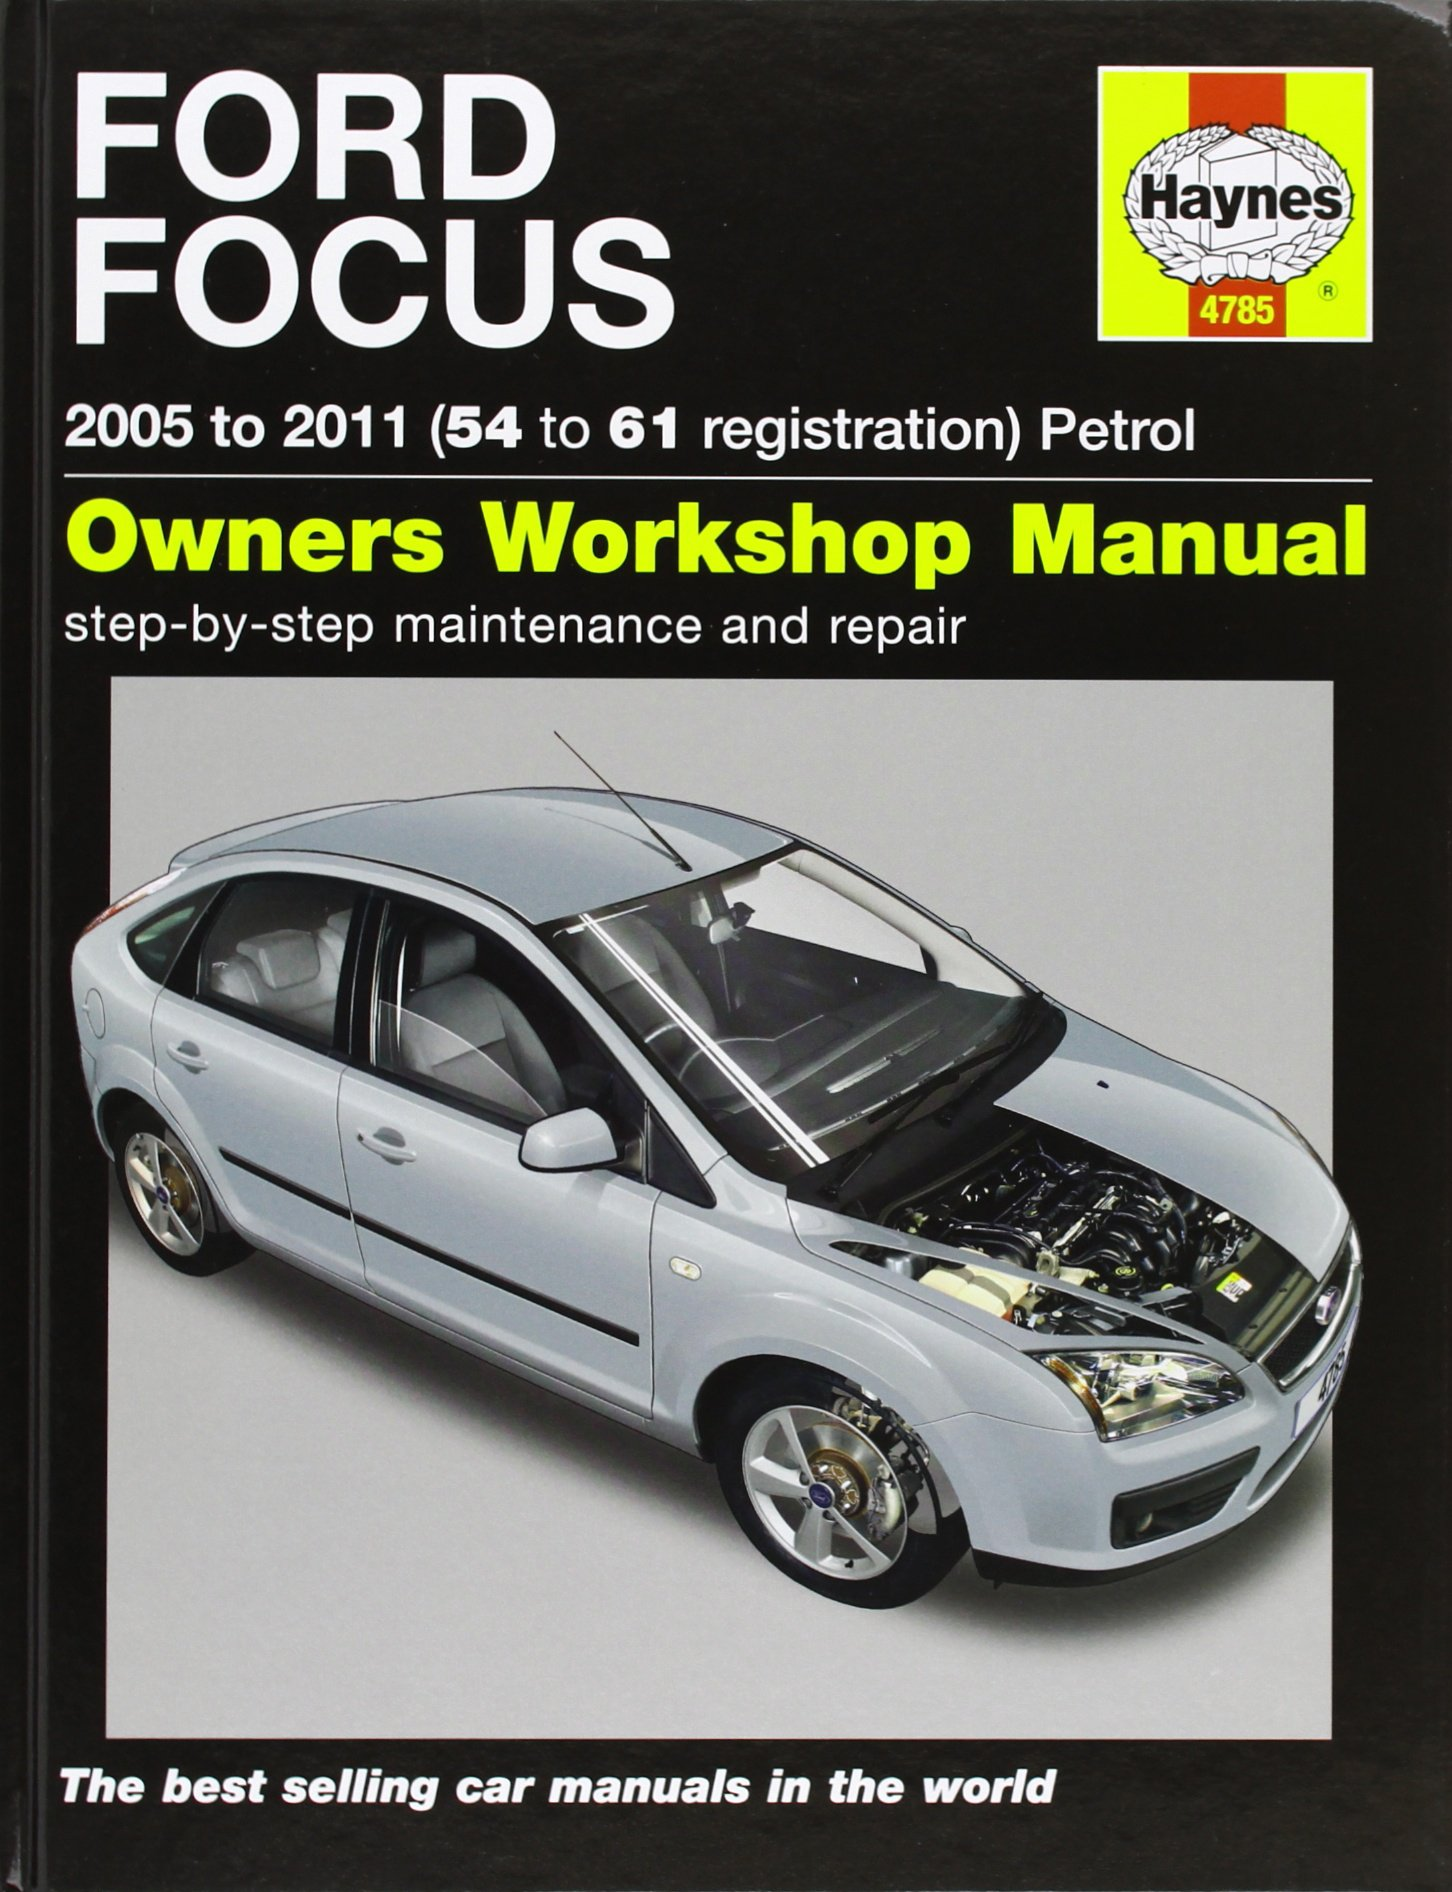 Ford Focus Petrol Service and Repair Manual (Haynes Service and Repair  Manuals): Martynn Randall: 9780857336996: Amazon.com: Books